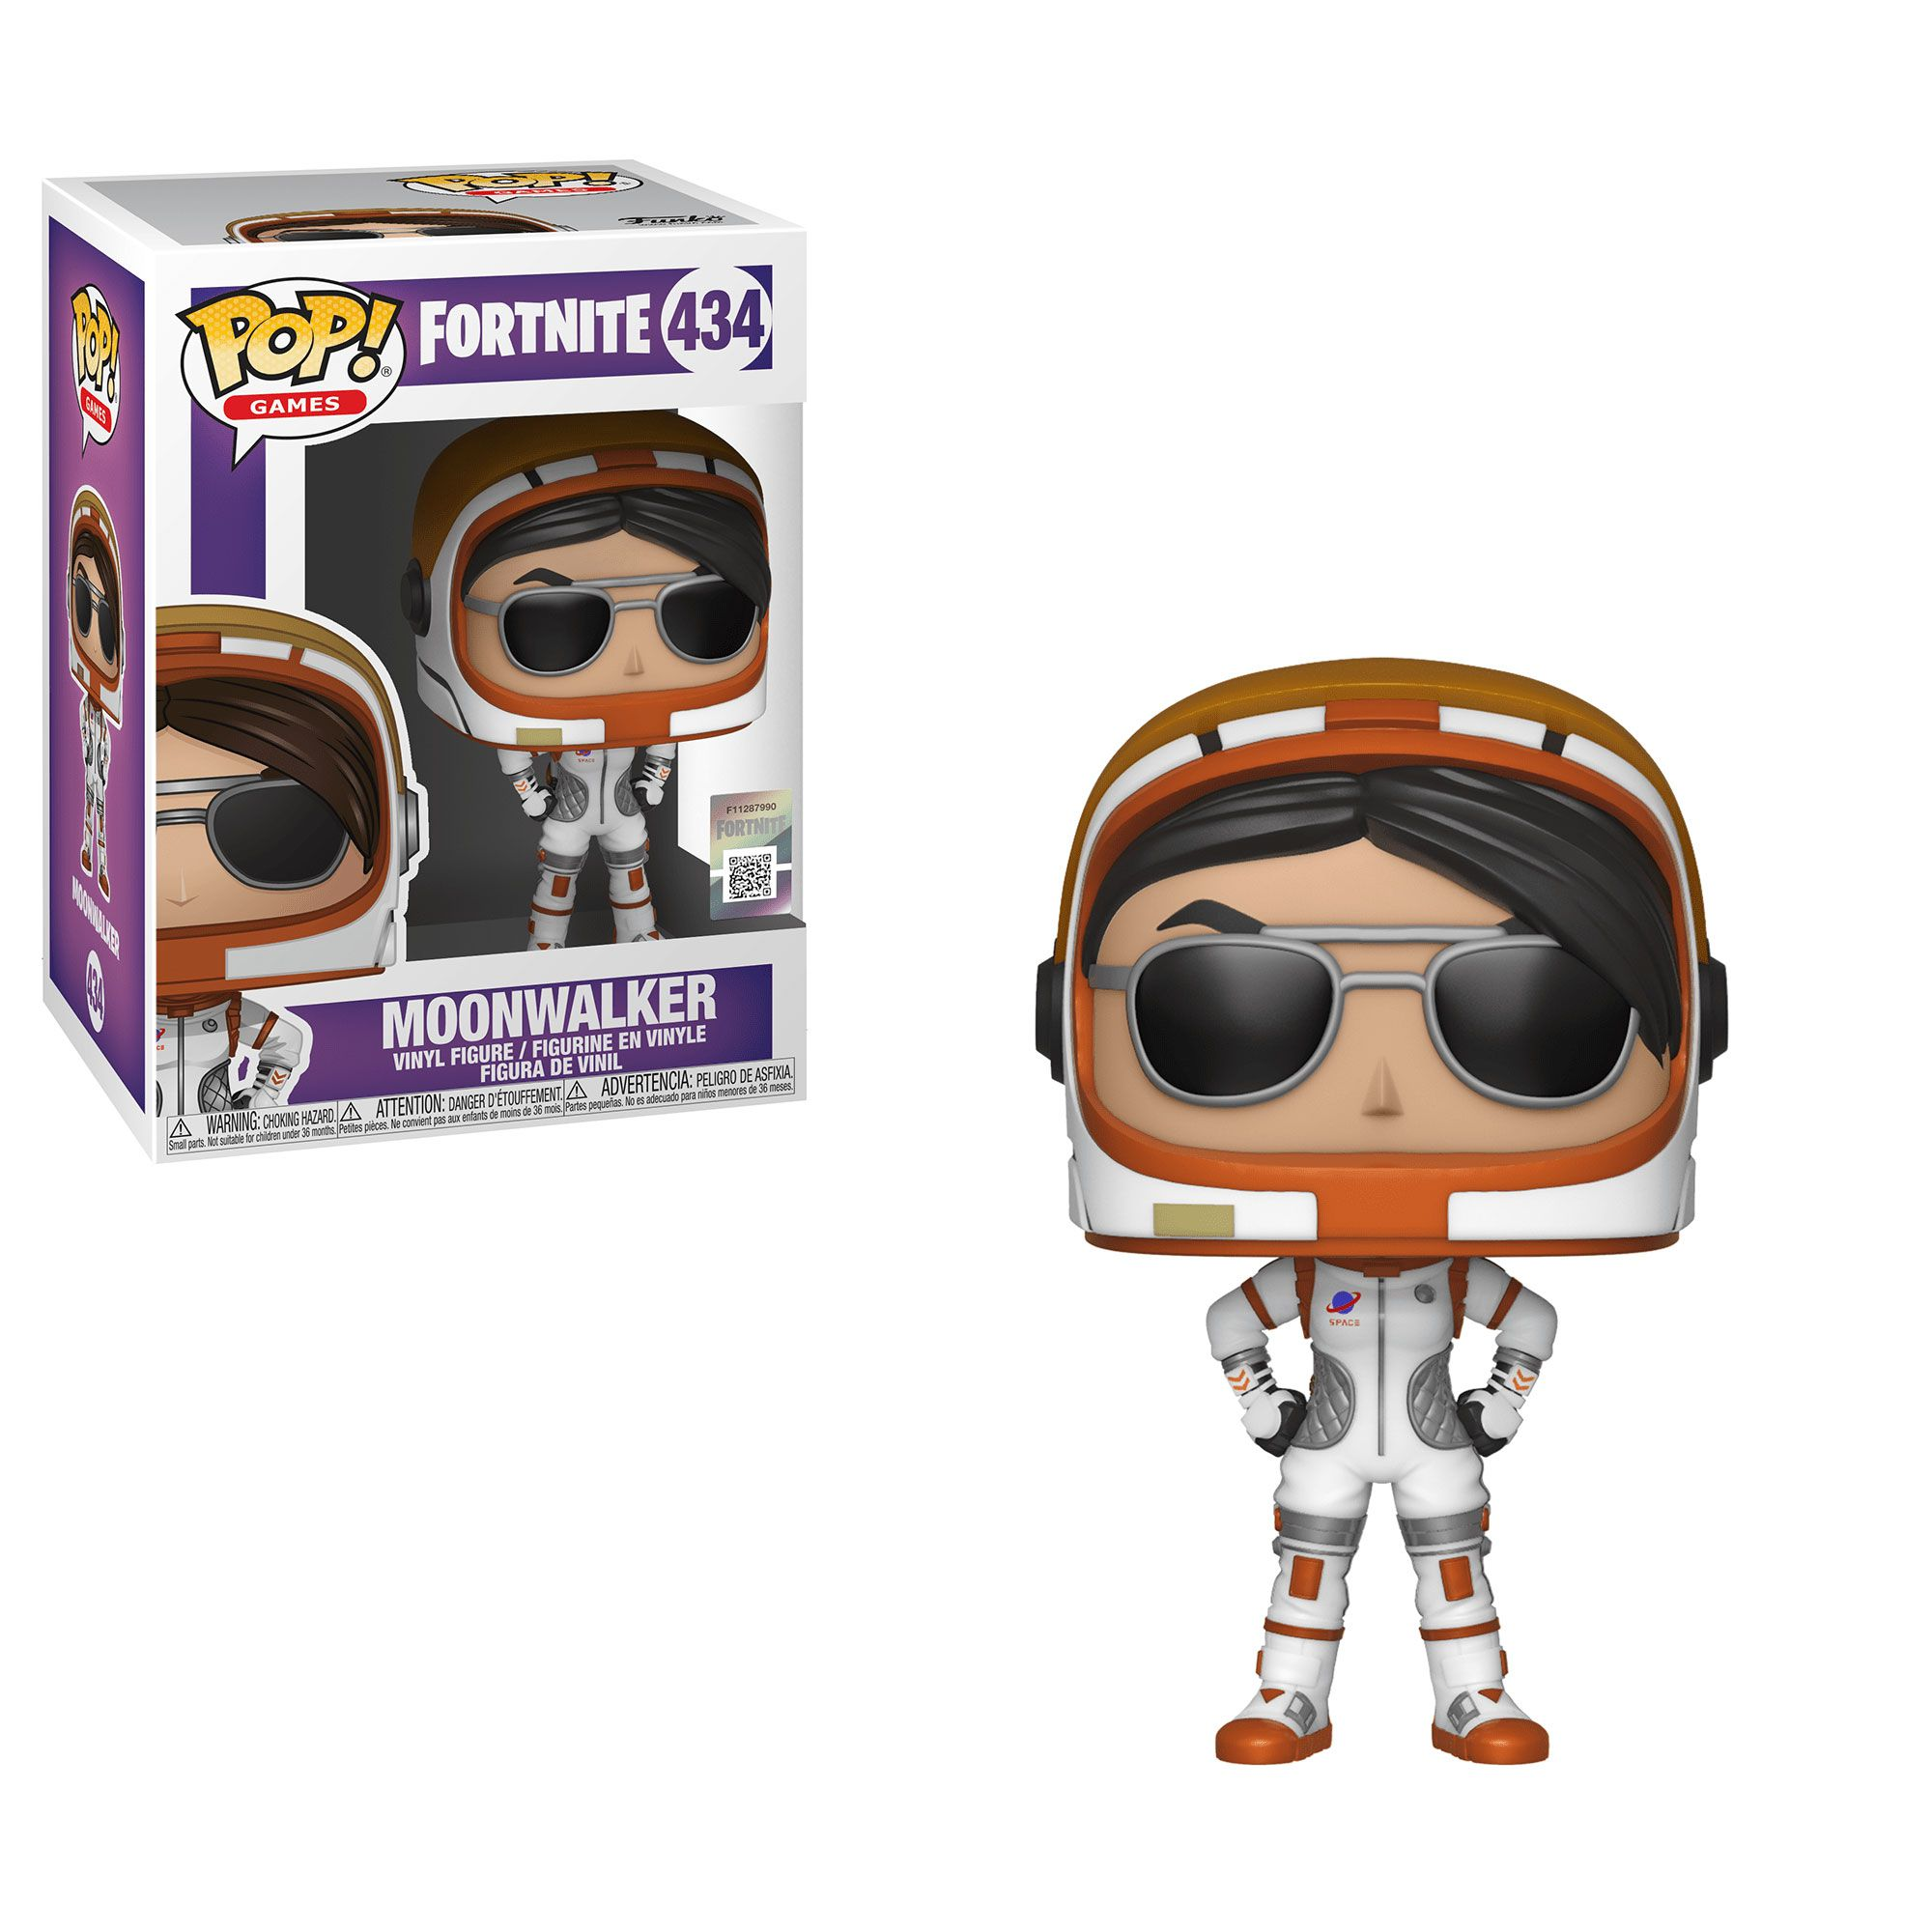 Moonwalker #434 - Fortnite - Funko Pop! Games